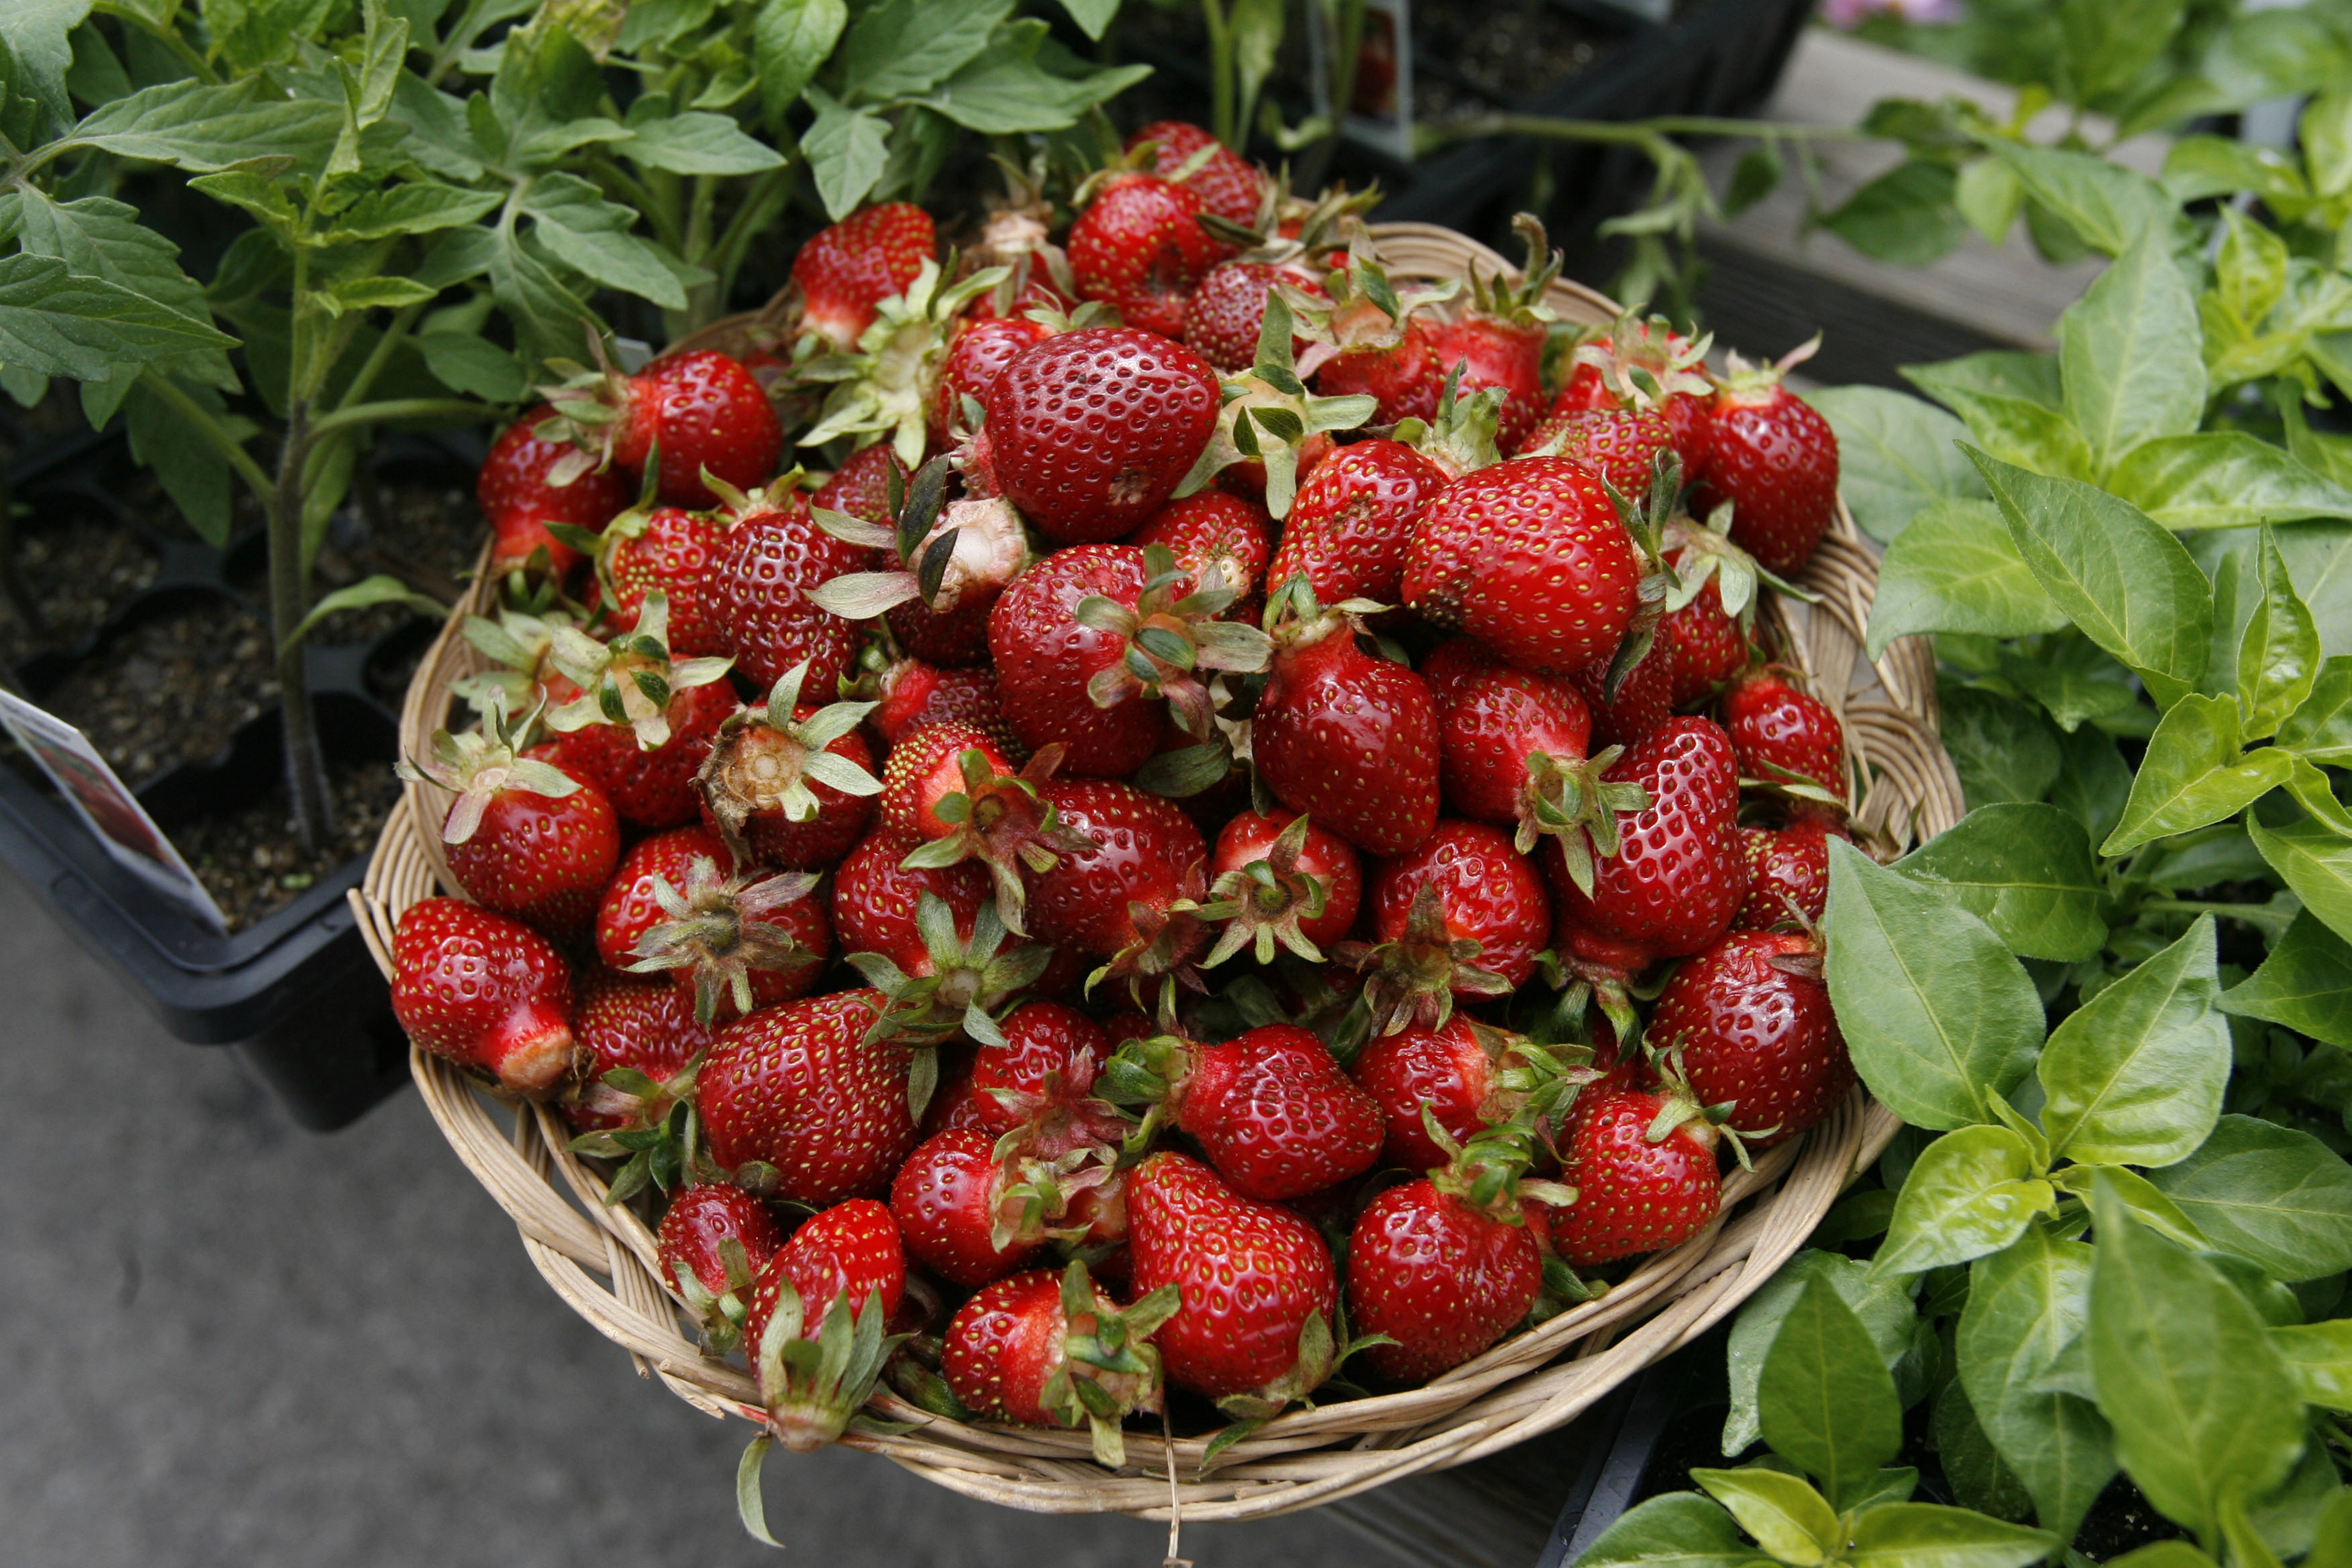 Strawberries may rival many other foods in health benefits, boasting help for hearts, teeth and protection against cancer.